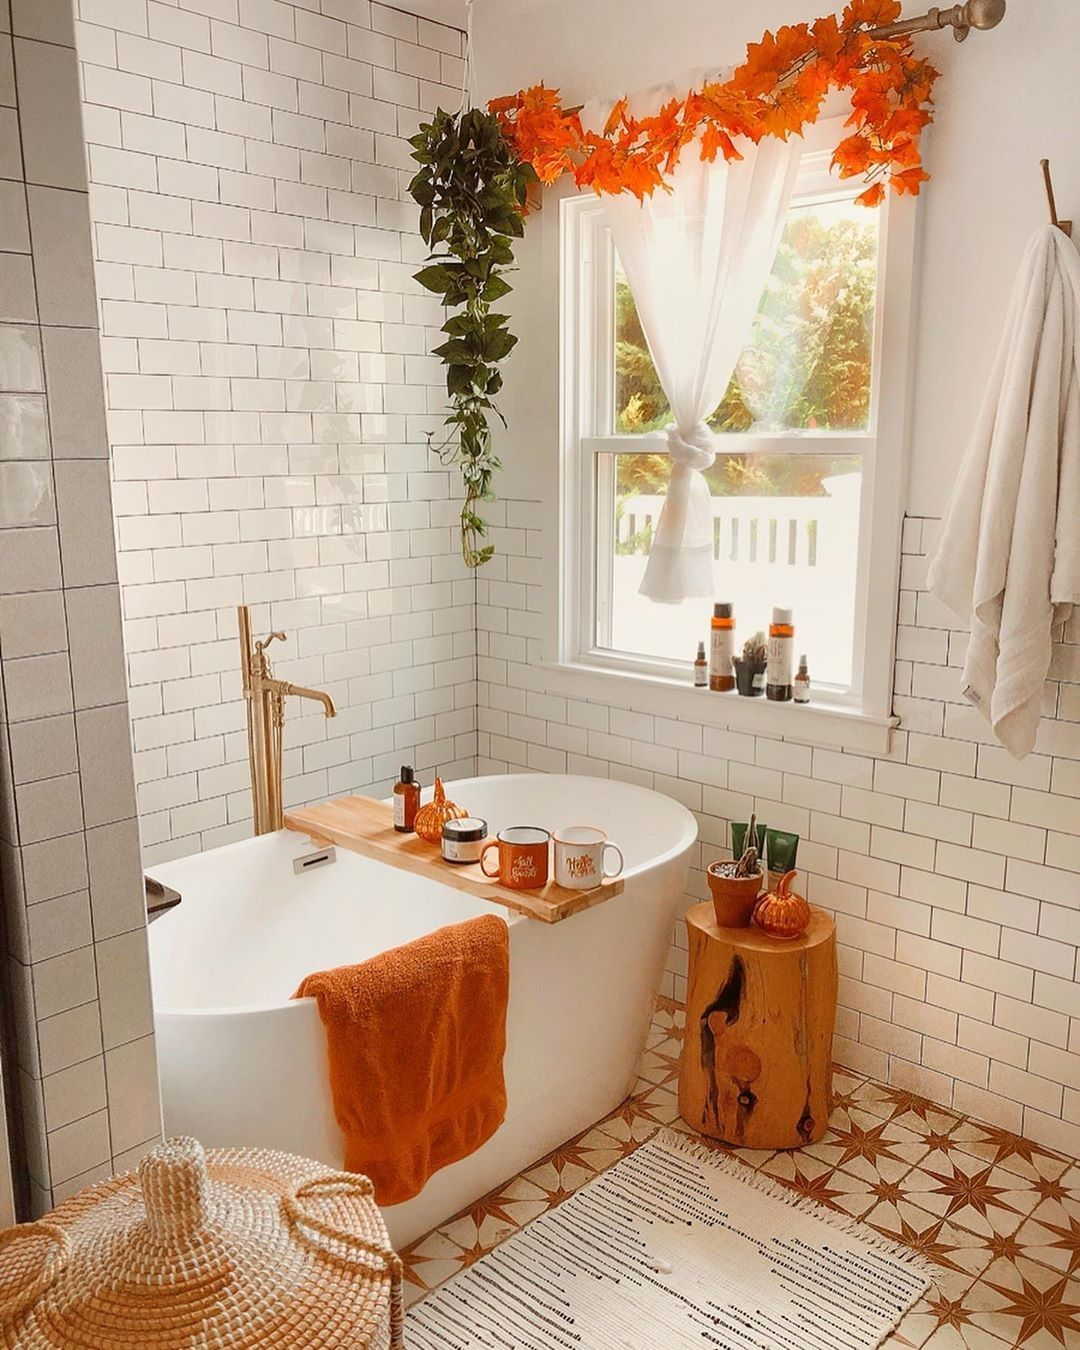 Zoella On Instagram You Can Always Count On Steffy To Bring You Autumn On The Very First Of Septe Fall Bathroom Decor Cosy Bathroom Christmas Bathroom Sets Fall bathroom decor sets